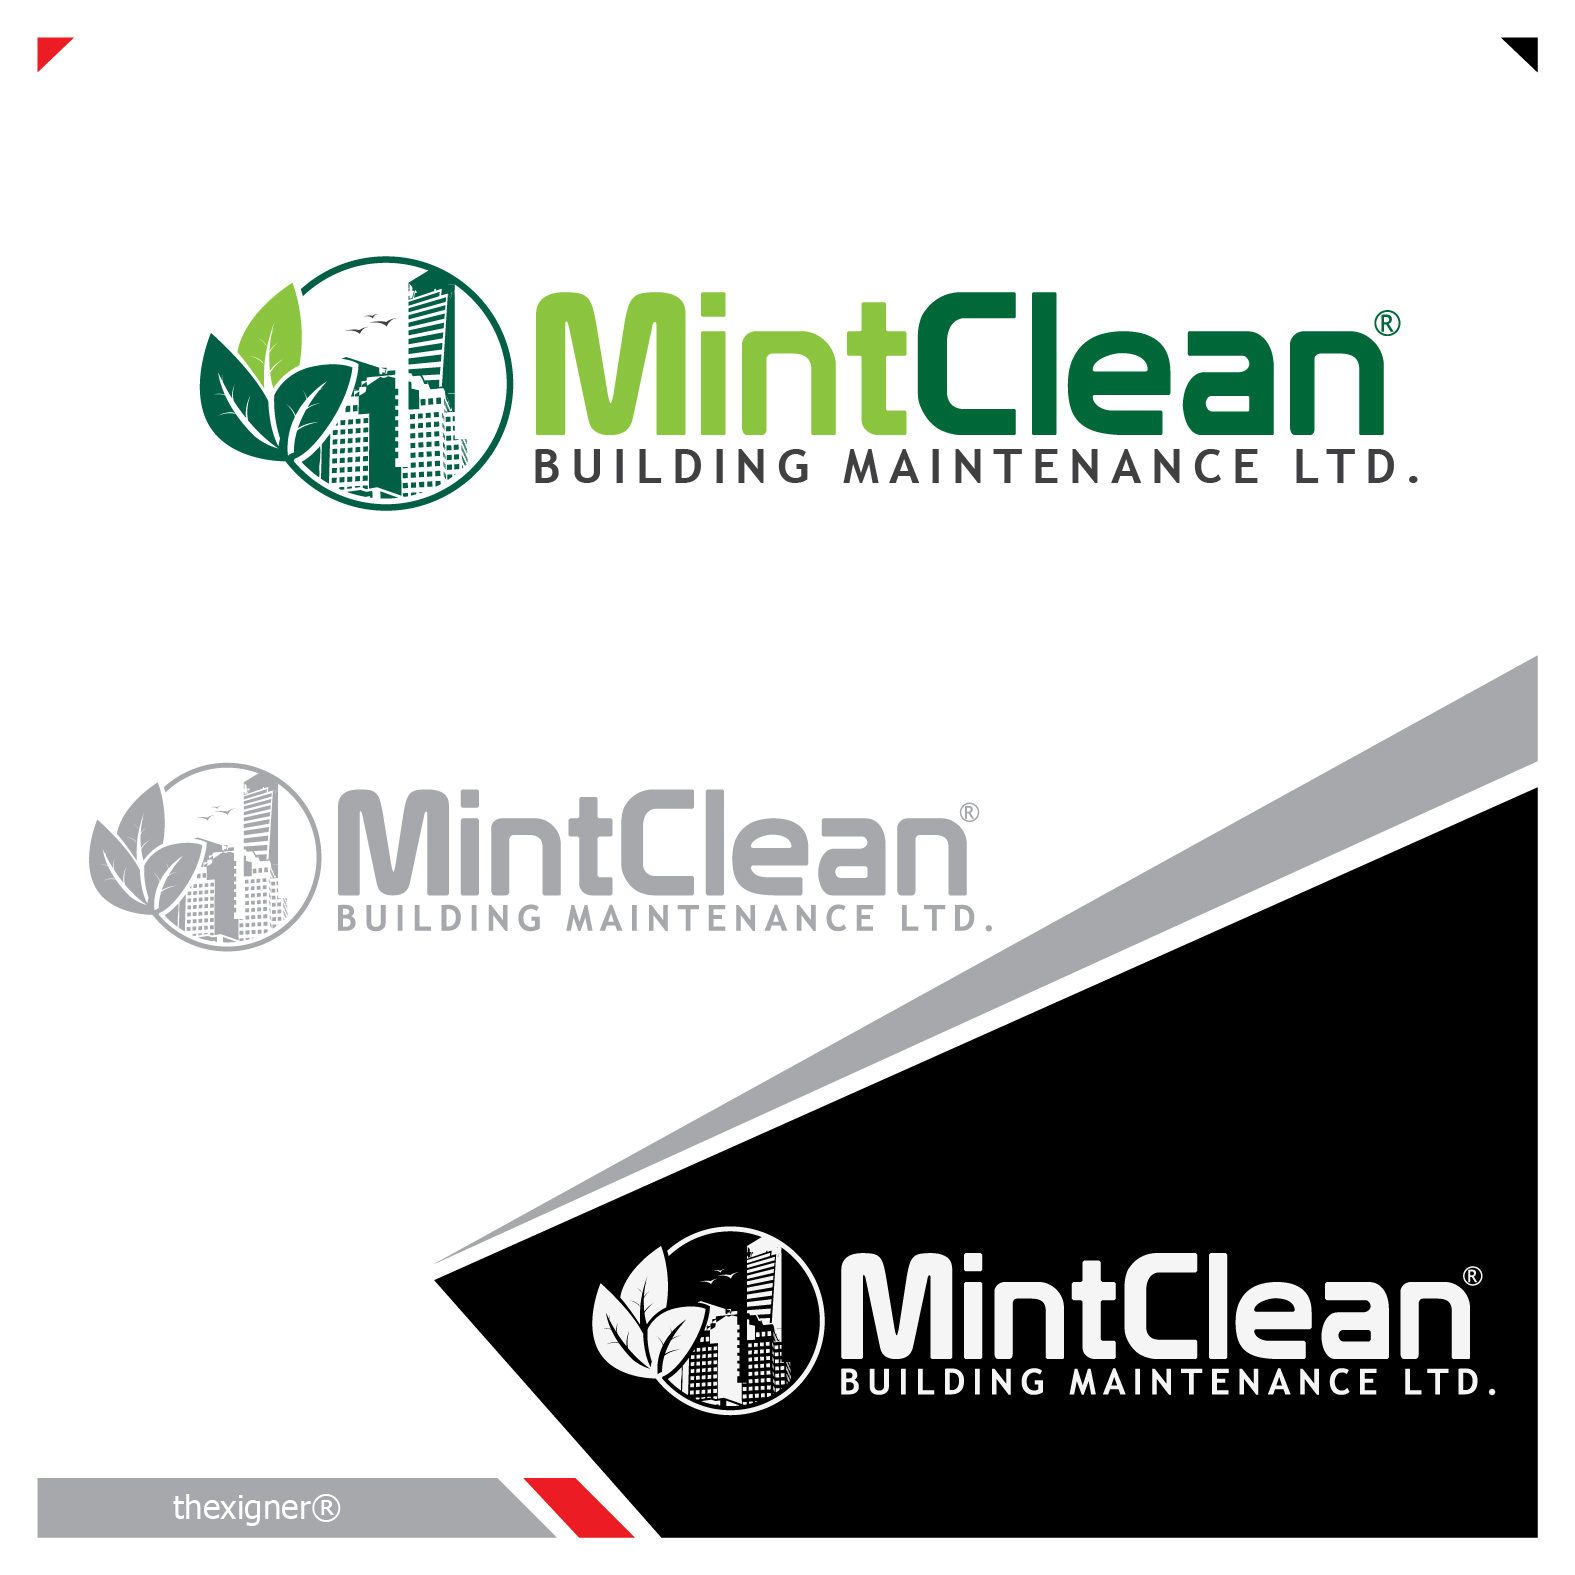 Logo Design by lagalag - Entry No. 92 in the Logo Design Contest MintClean Building Maintenance Ltd. Logo Design.